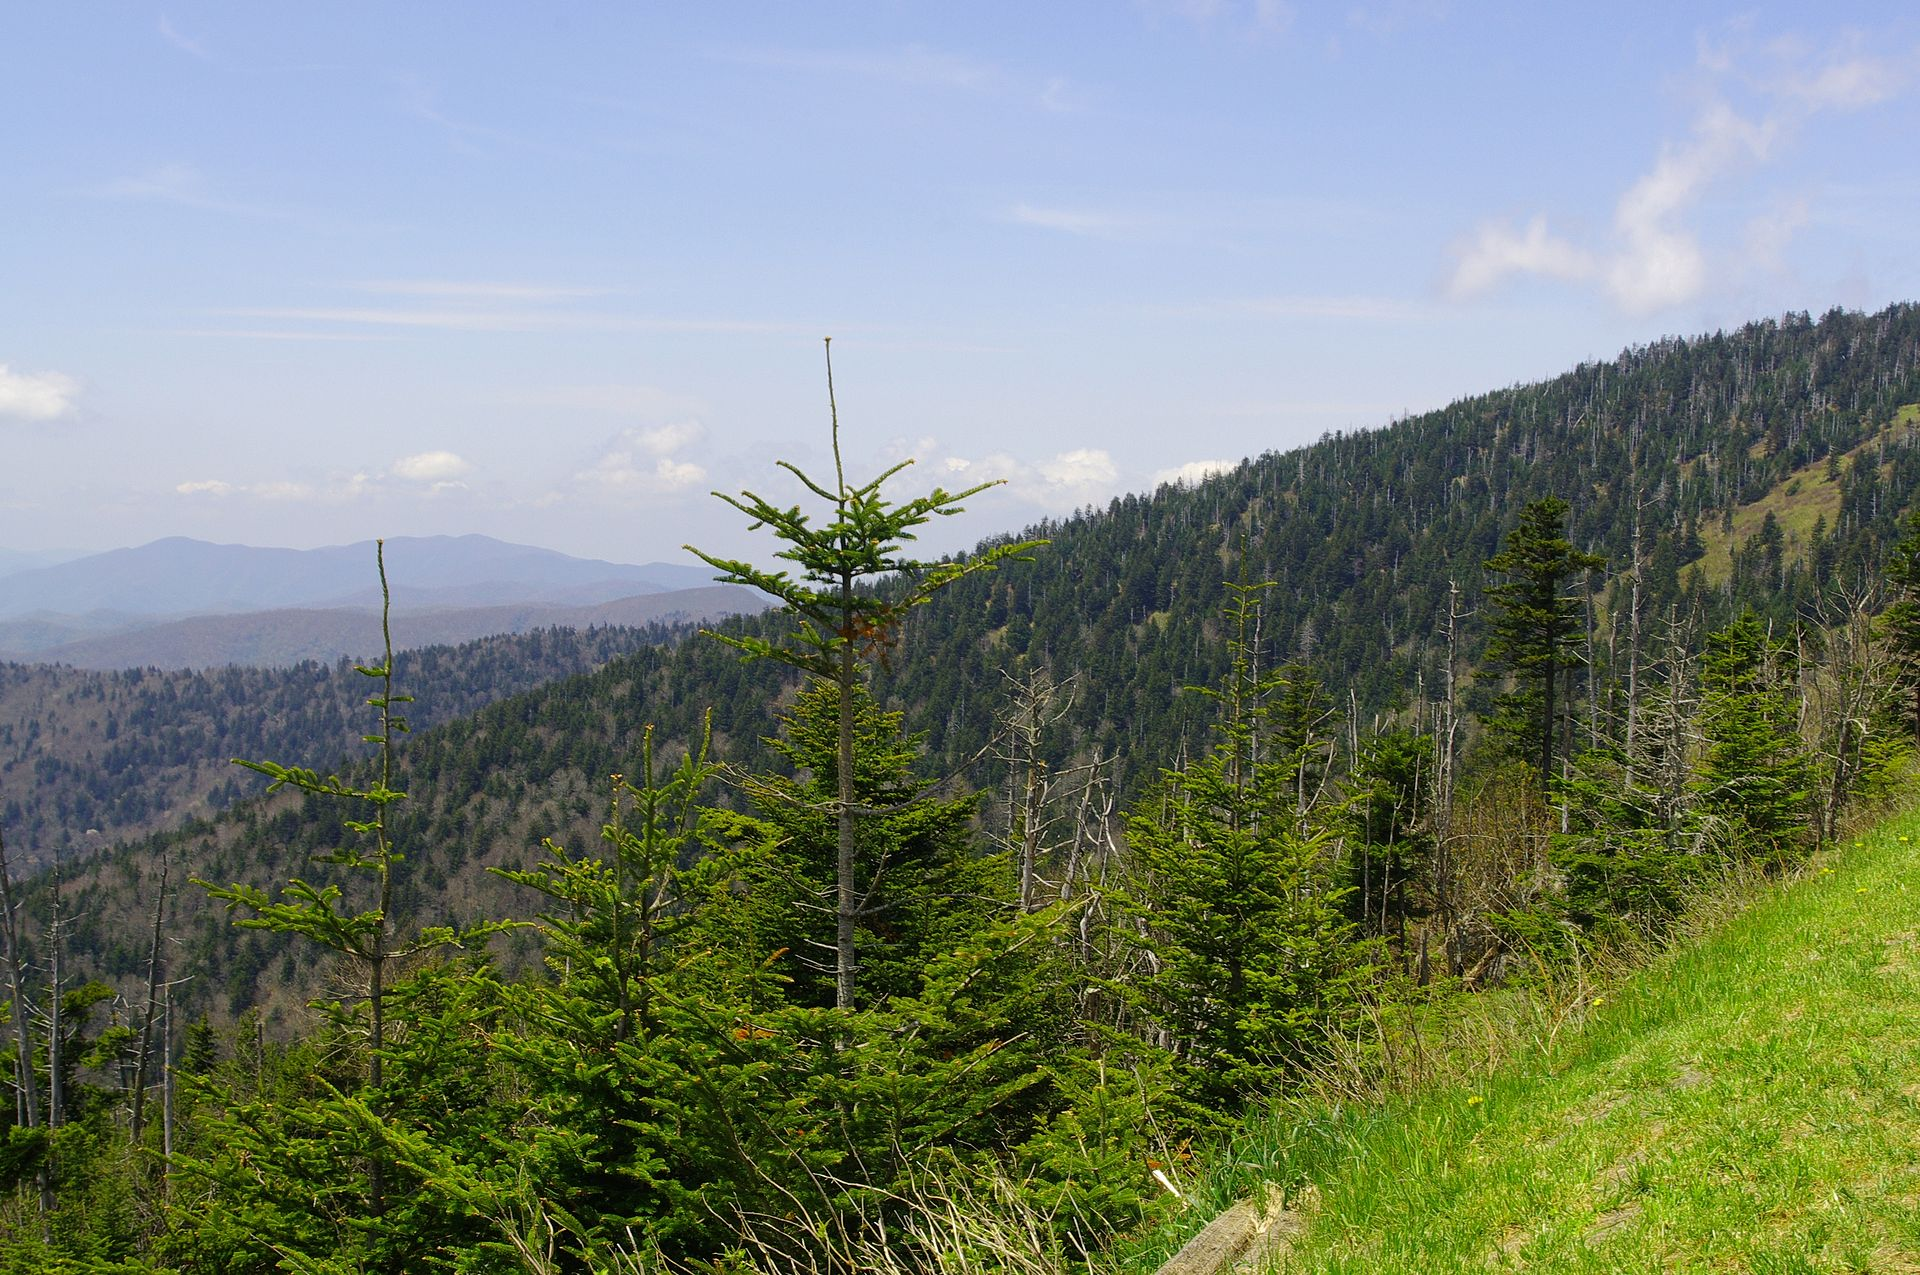 Southern Appalachian spruce–fir forest - Wikipedia